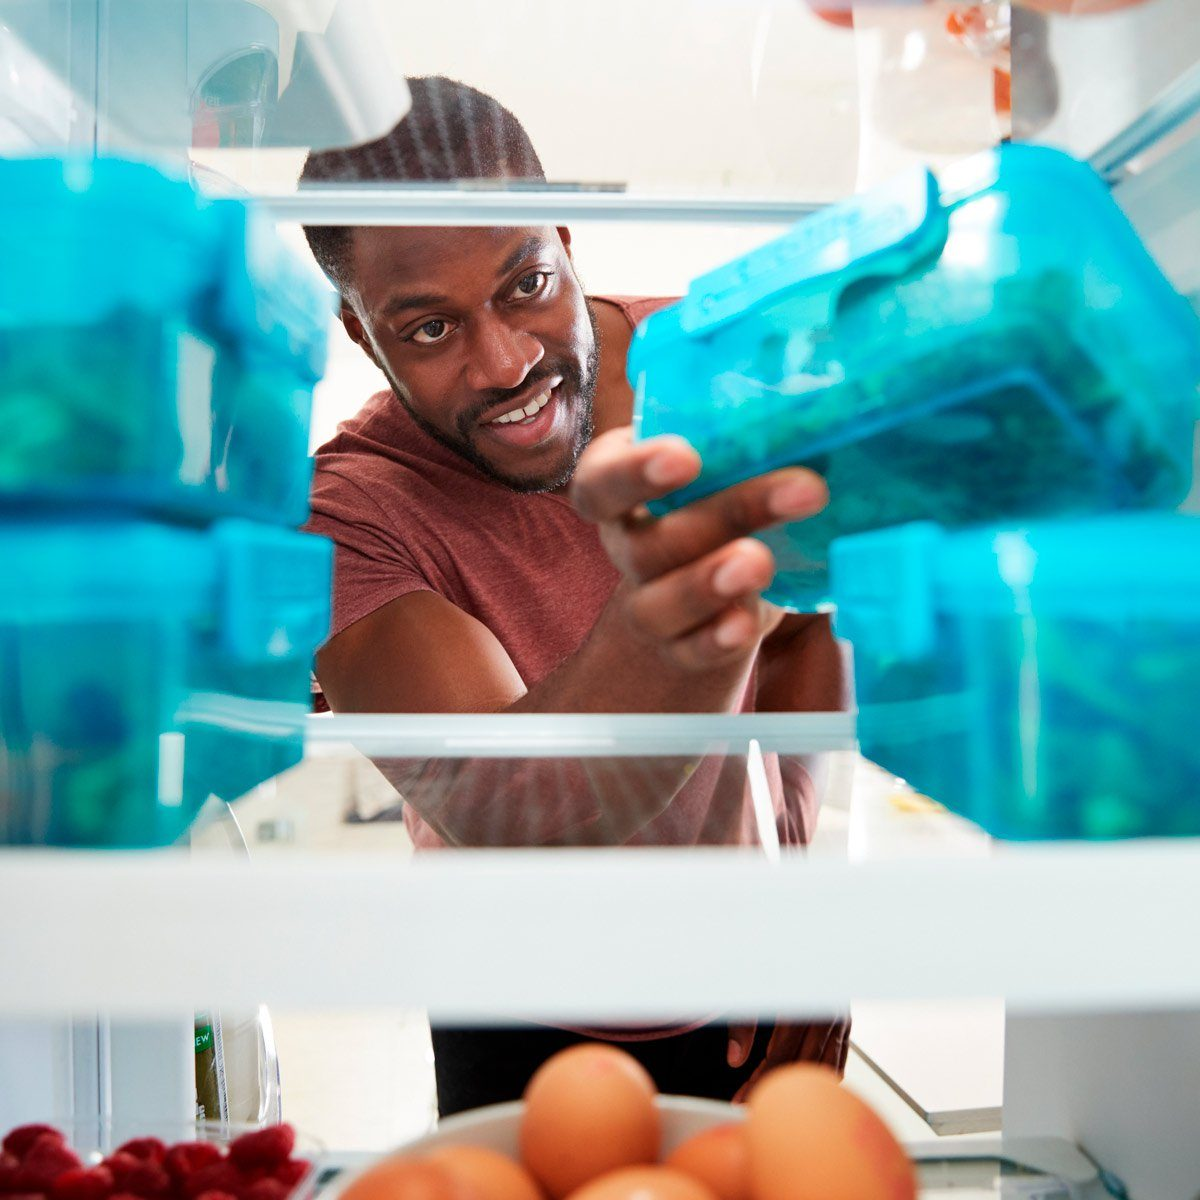 Simple Tips to Help You Organize Your Fridge